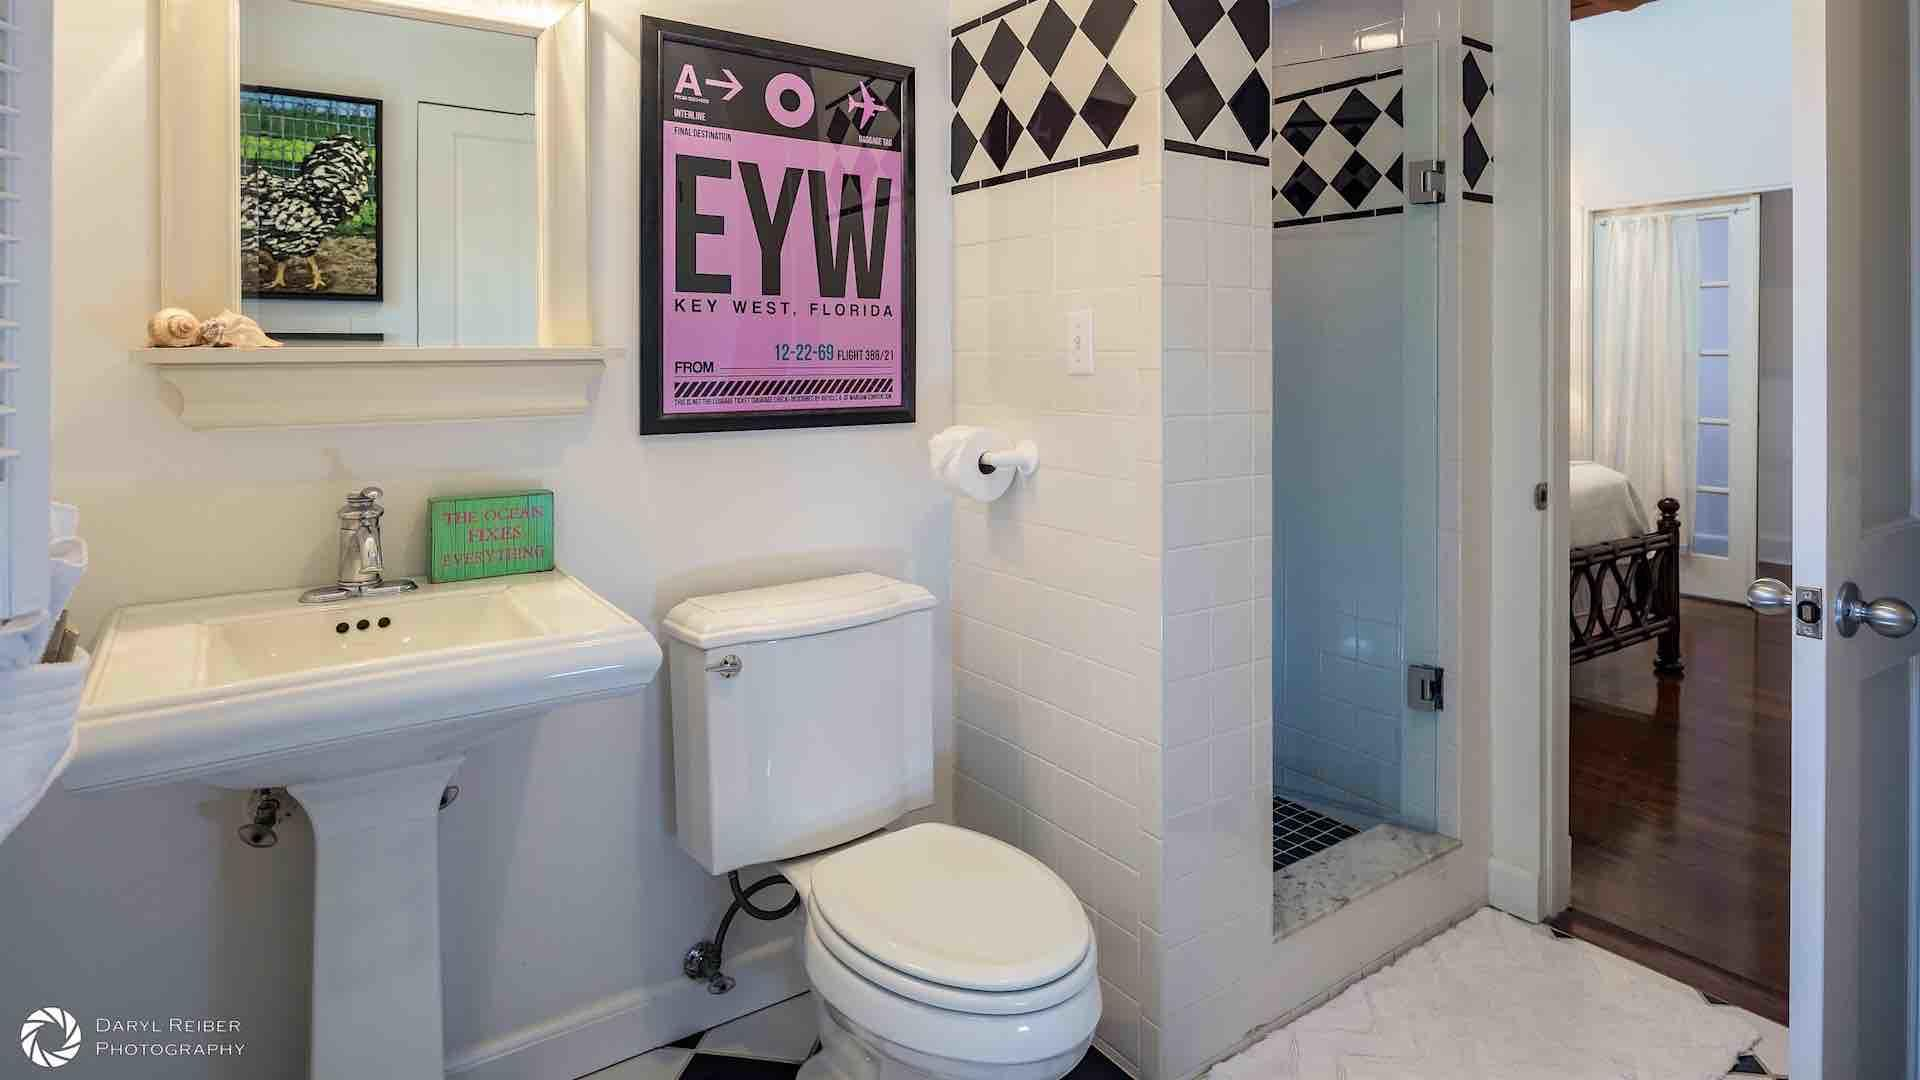 There is a bathroom located in between the second and third bedrooms...